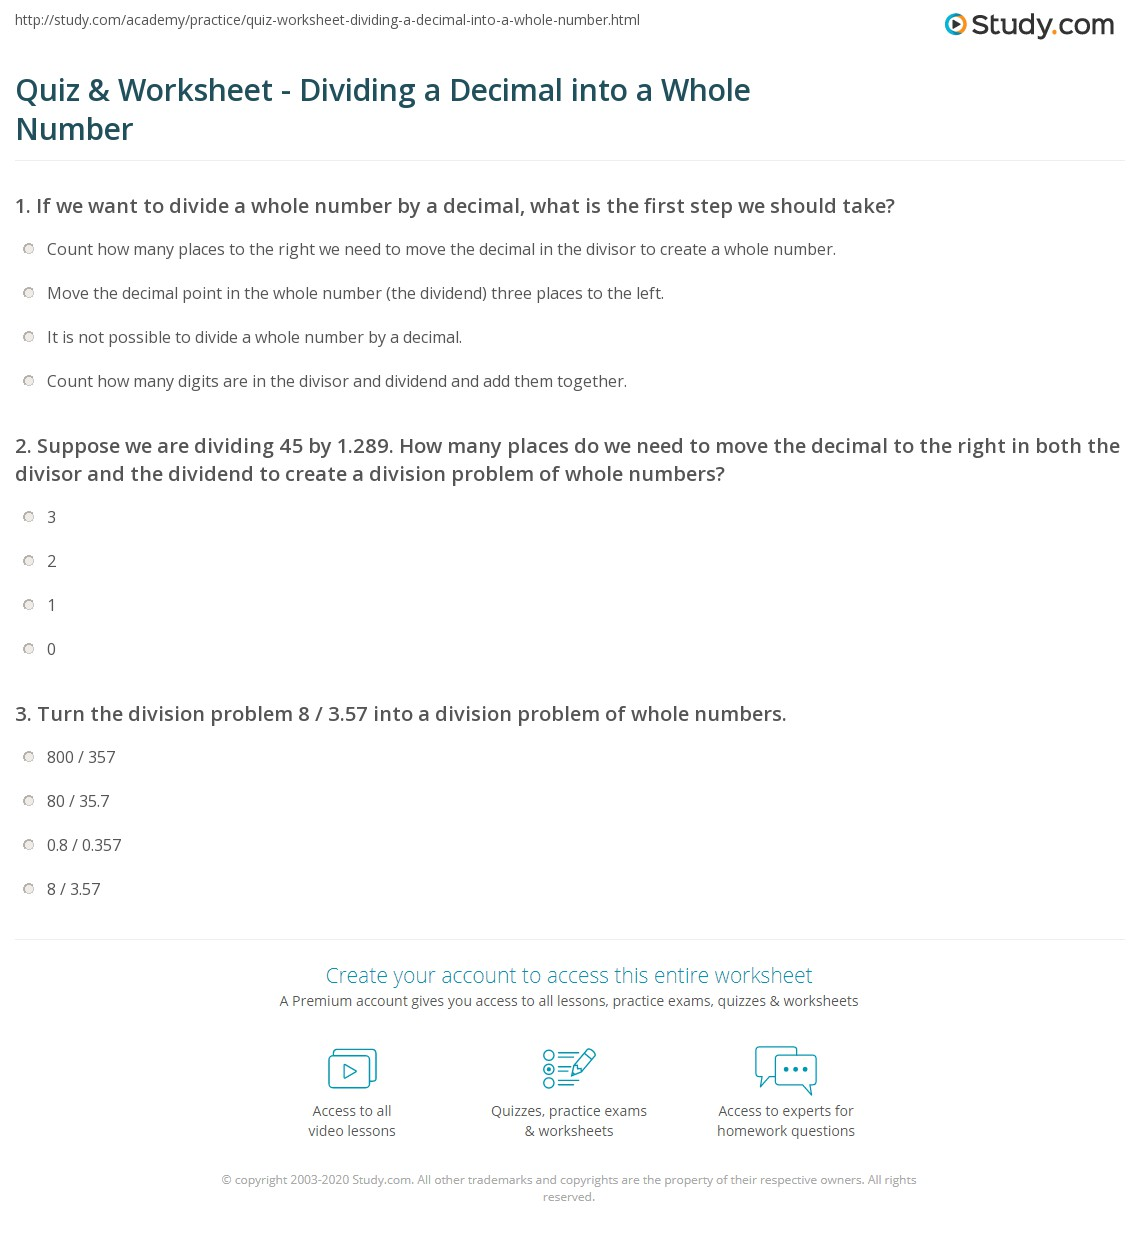 Quiz and Worksheet Dividing a Decimal into a Whole Number – Dividing Whole Numbers by Decimals Worksheet